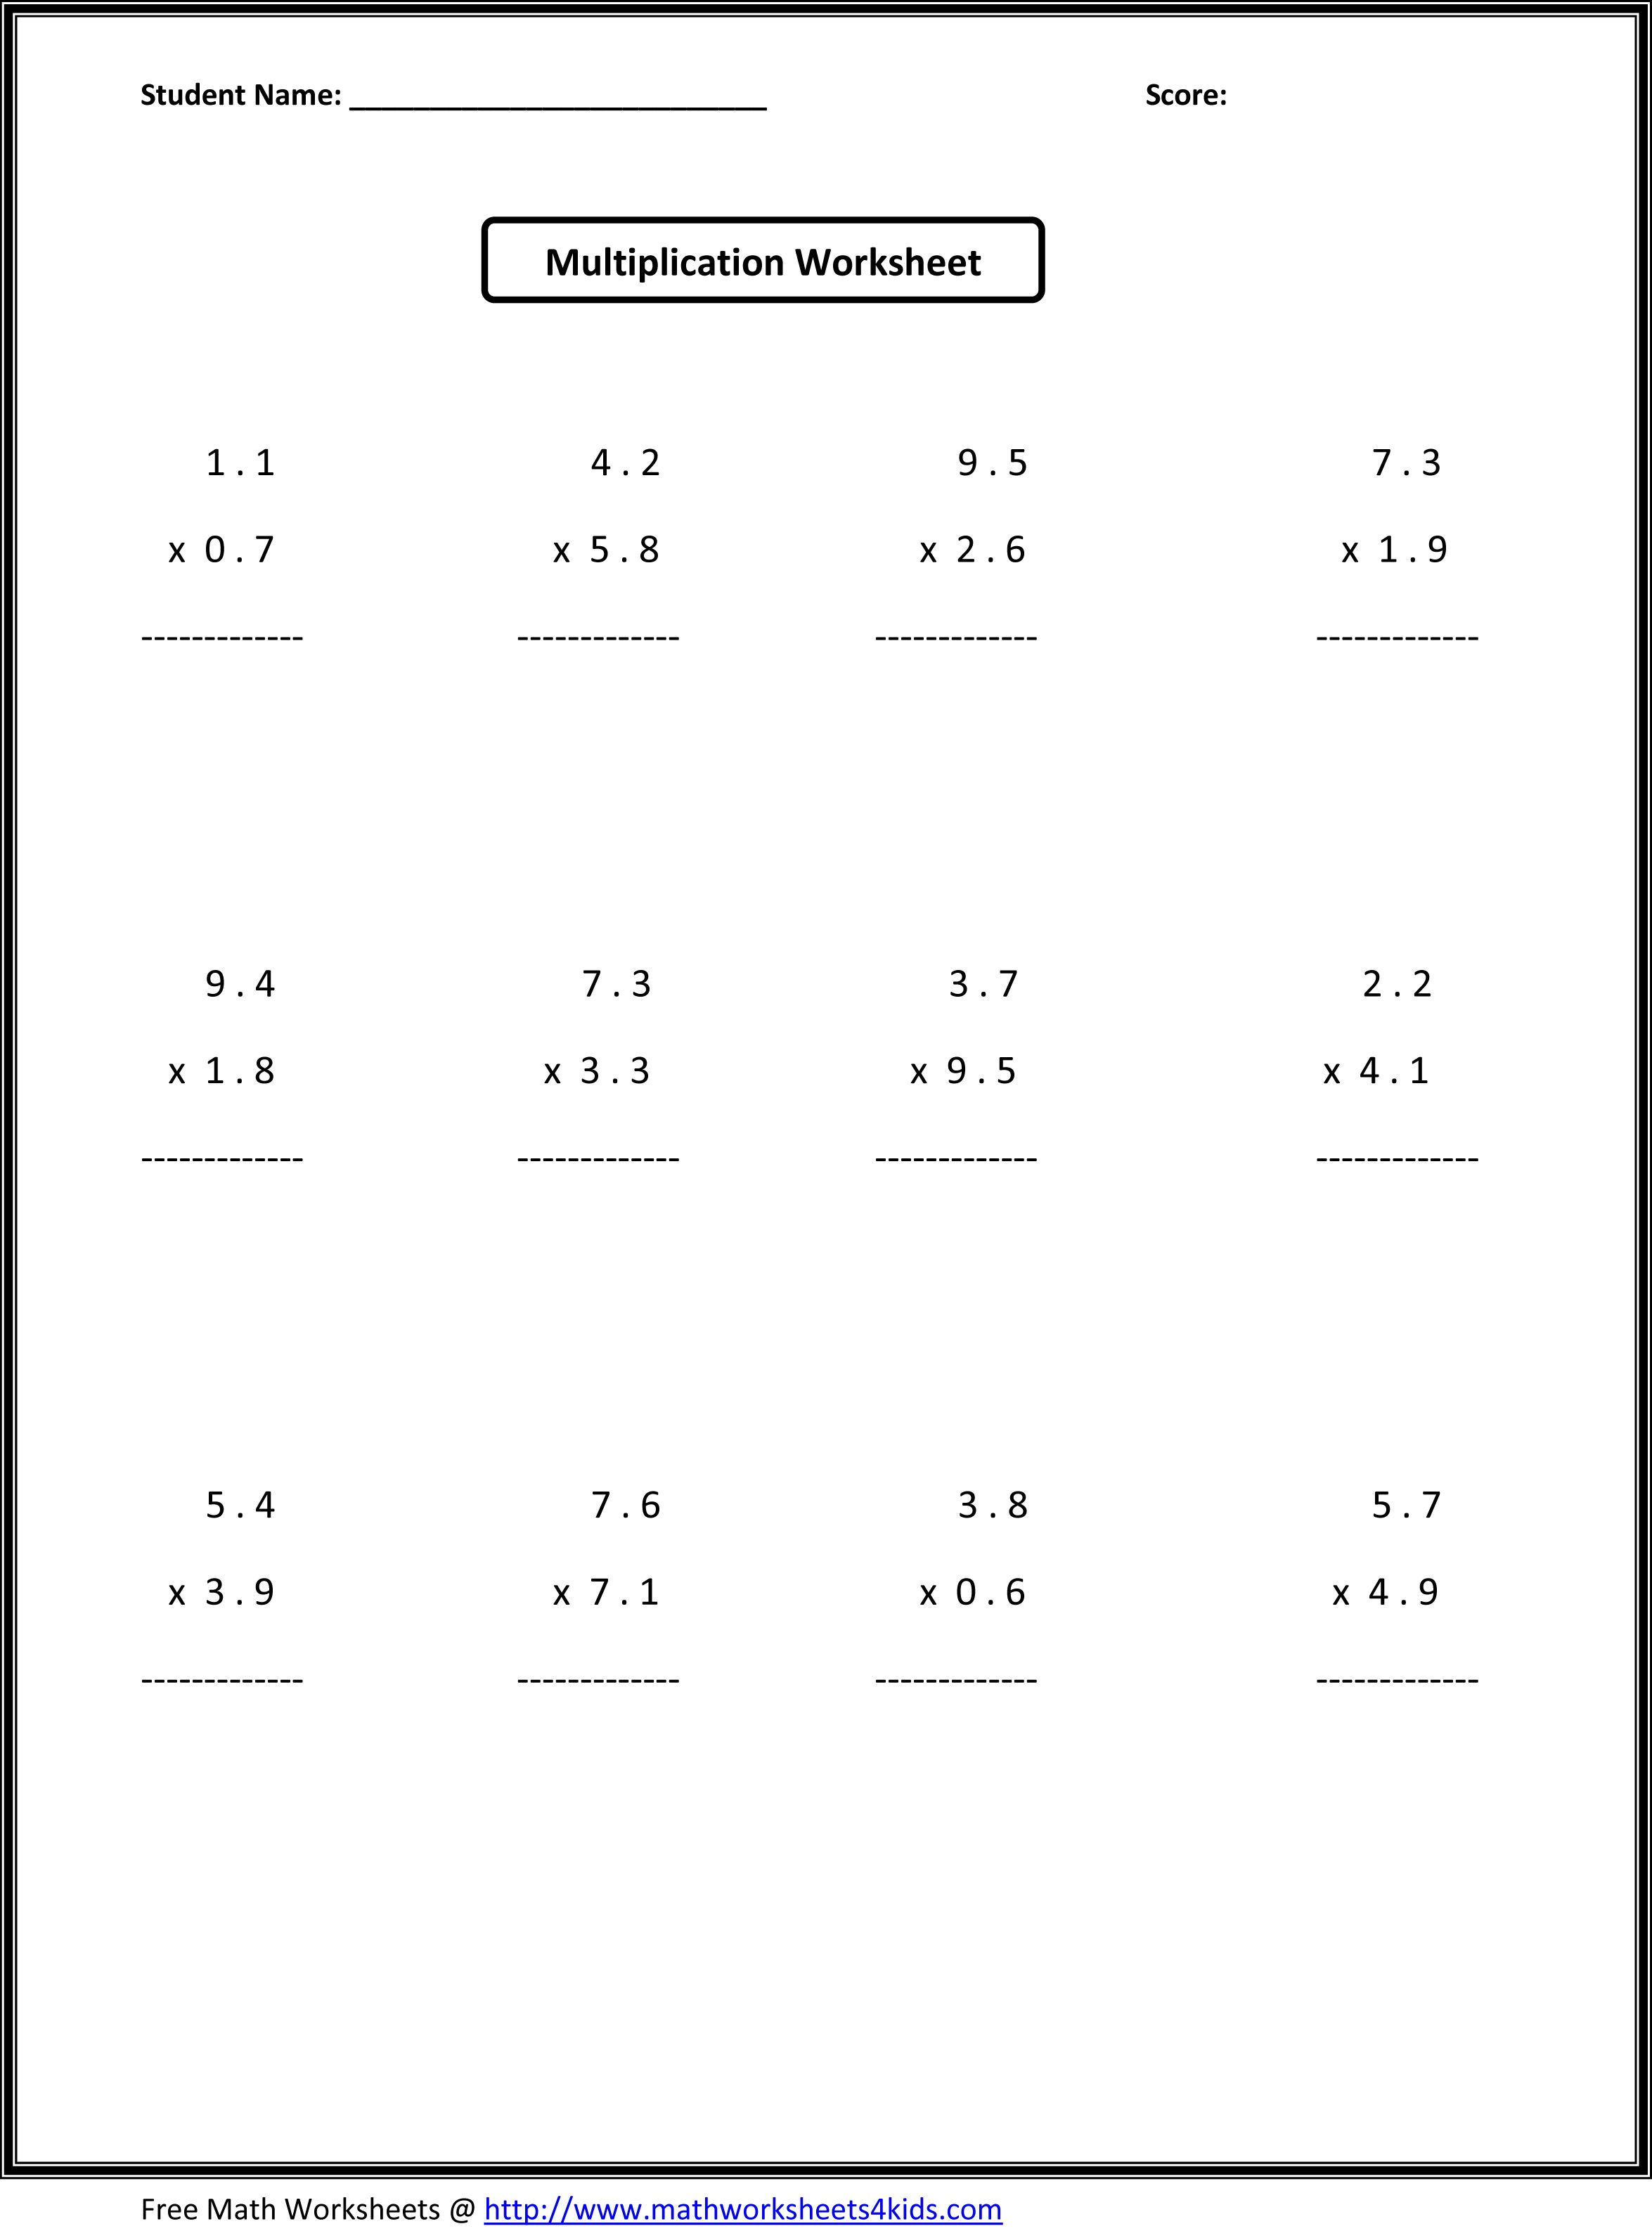 7th grade math worksheets – Grade 7 Math Worksheets Free